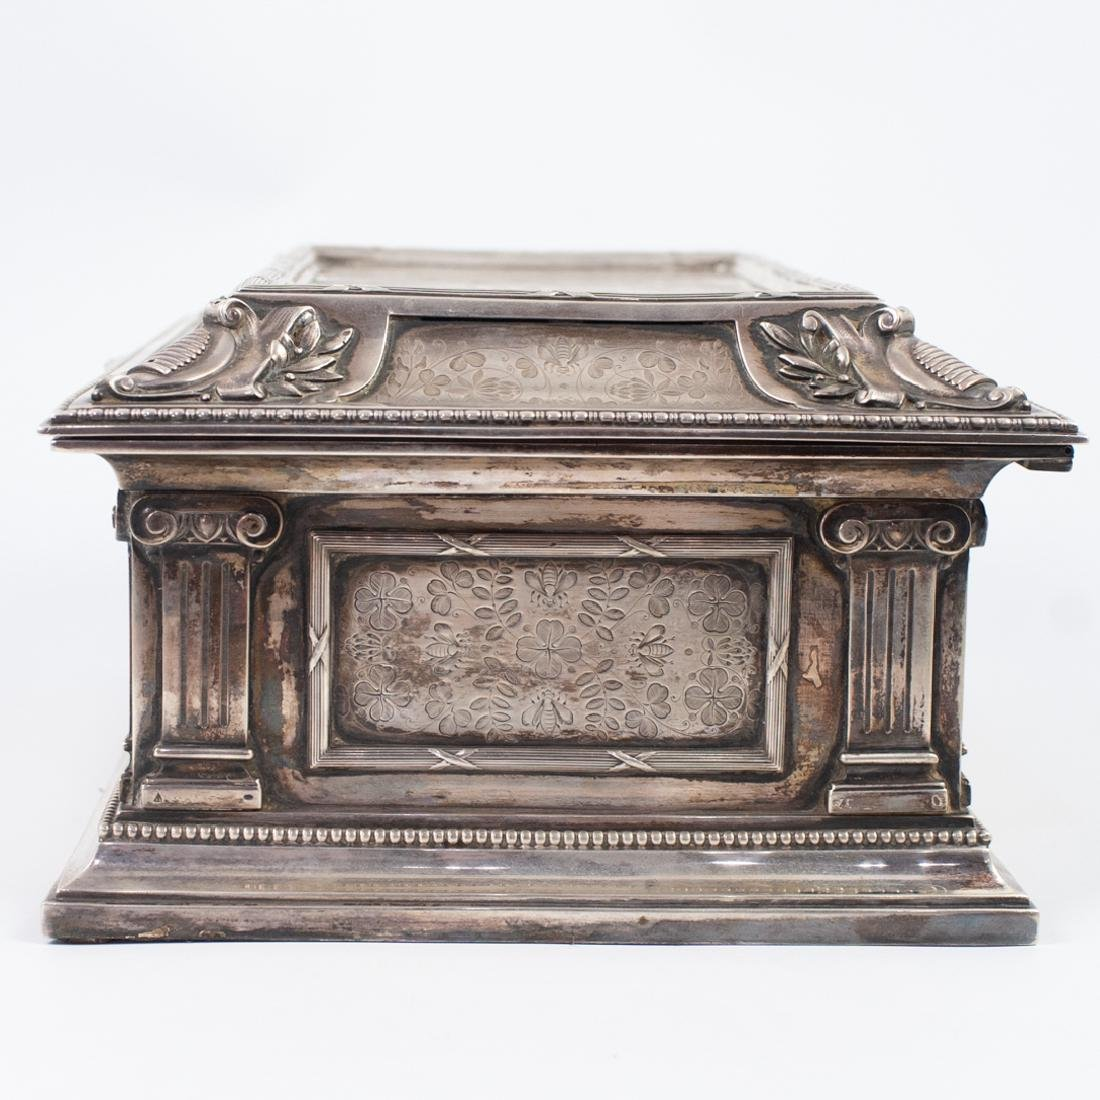 Antal Bachruch Antique Silver Jewelry Box - 8